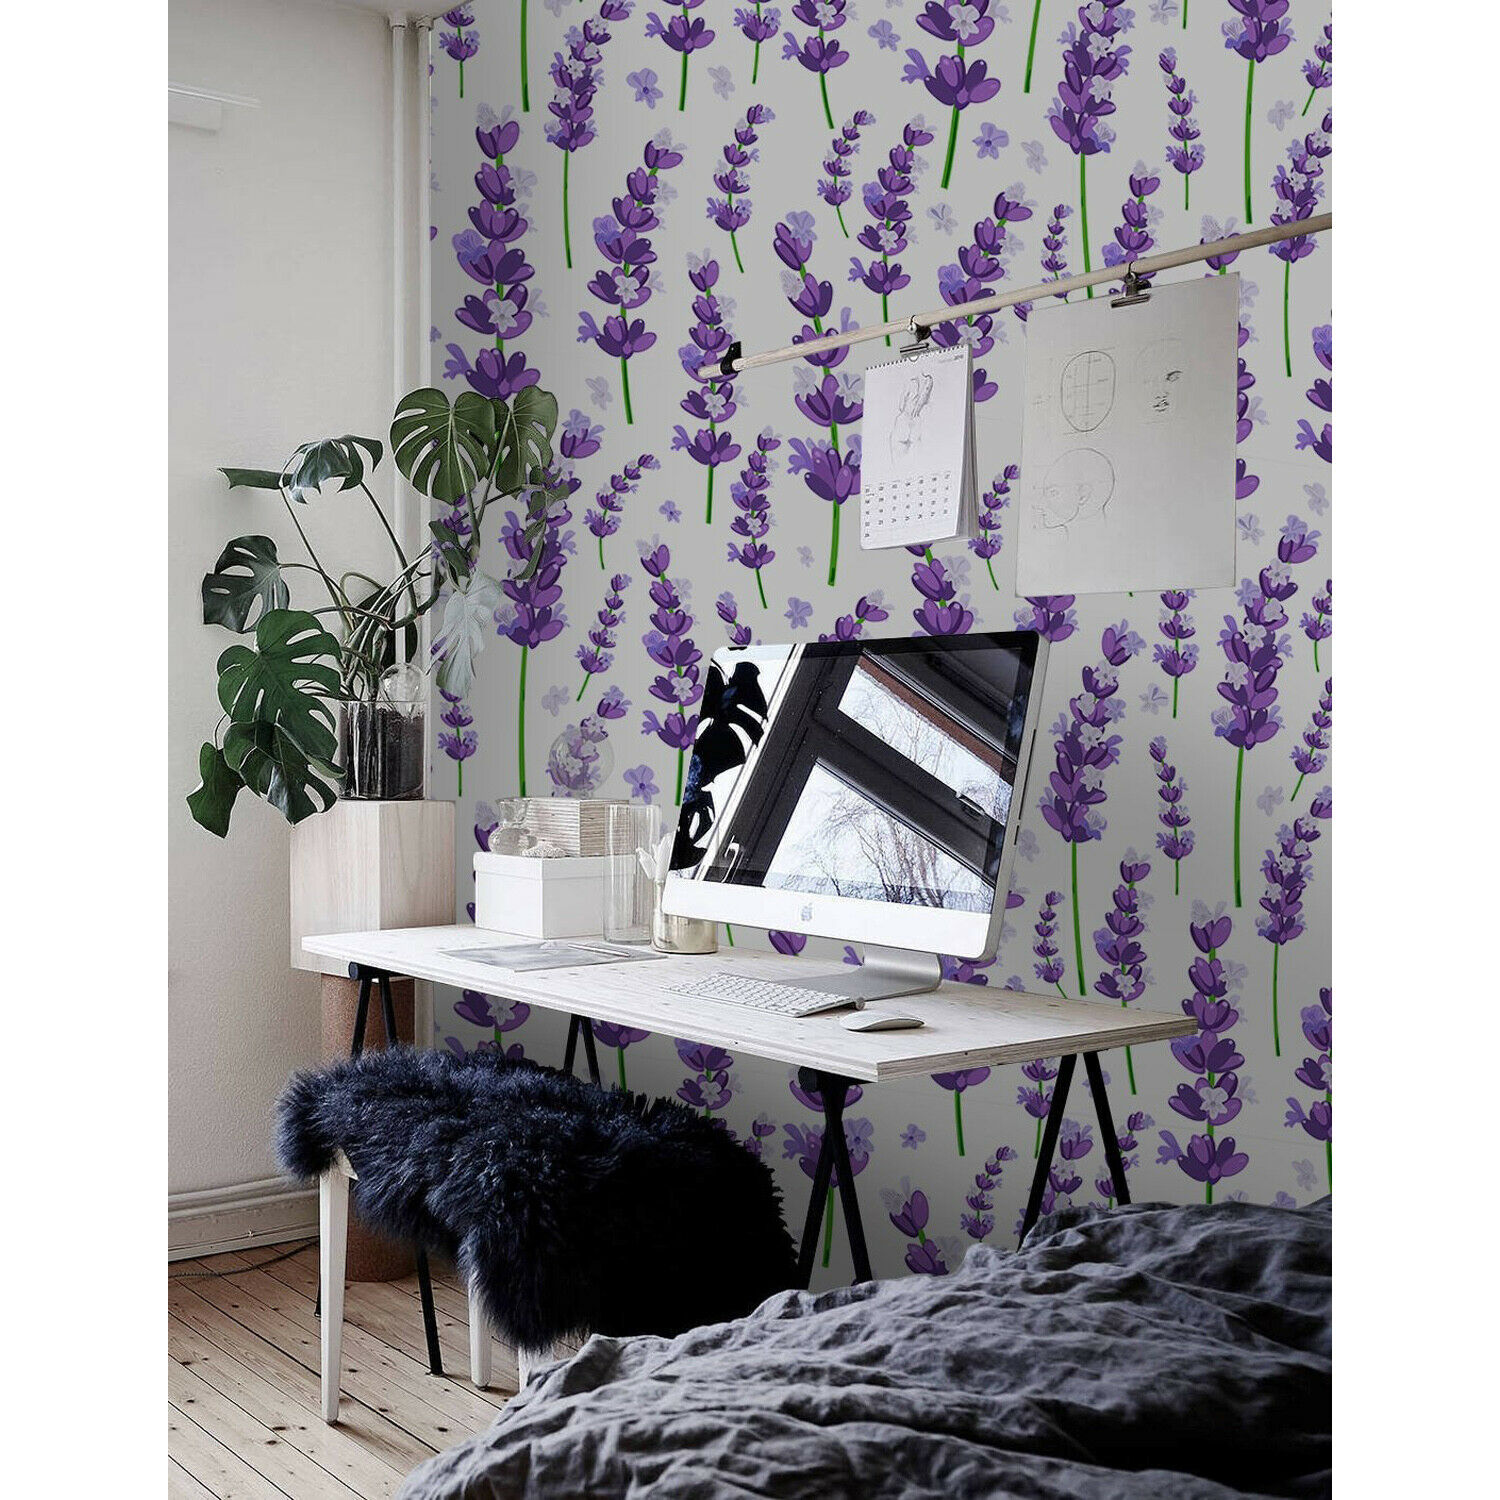 Provence lila lavender flowers  lila and Grün wall mural photo wallpaper